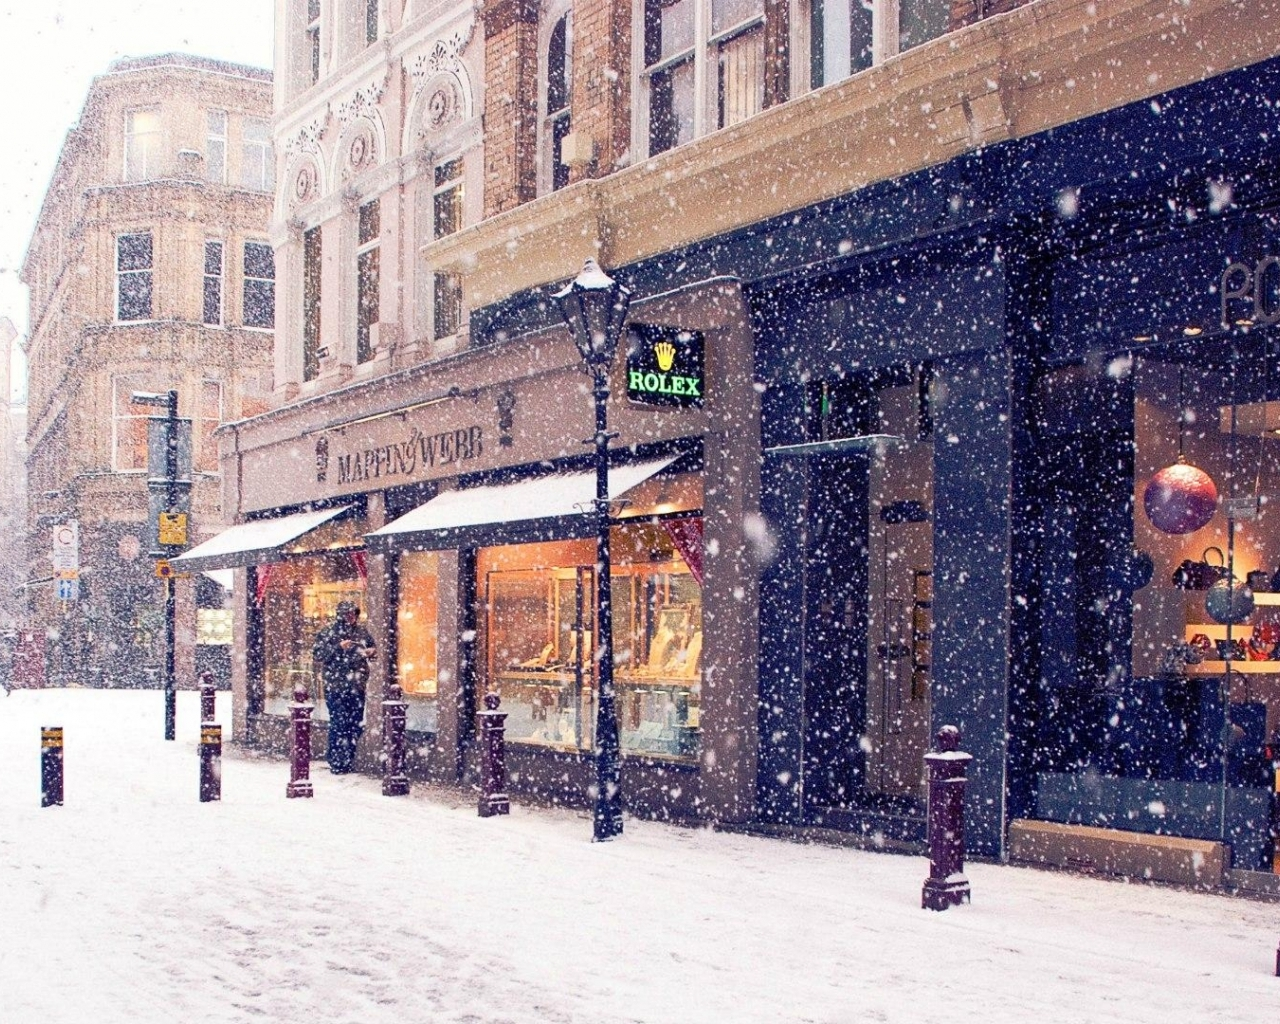 Download Snowing in town wallpaper in CityWorld wallpapers with all 264